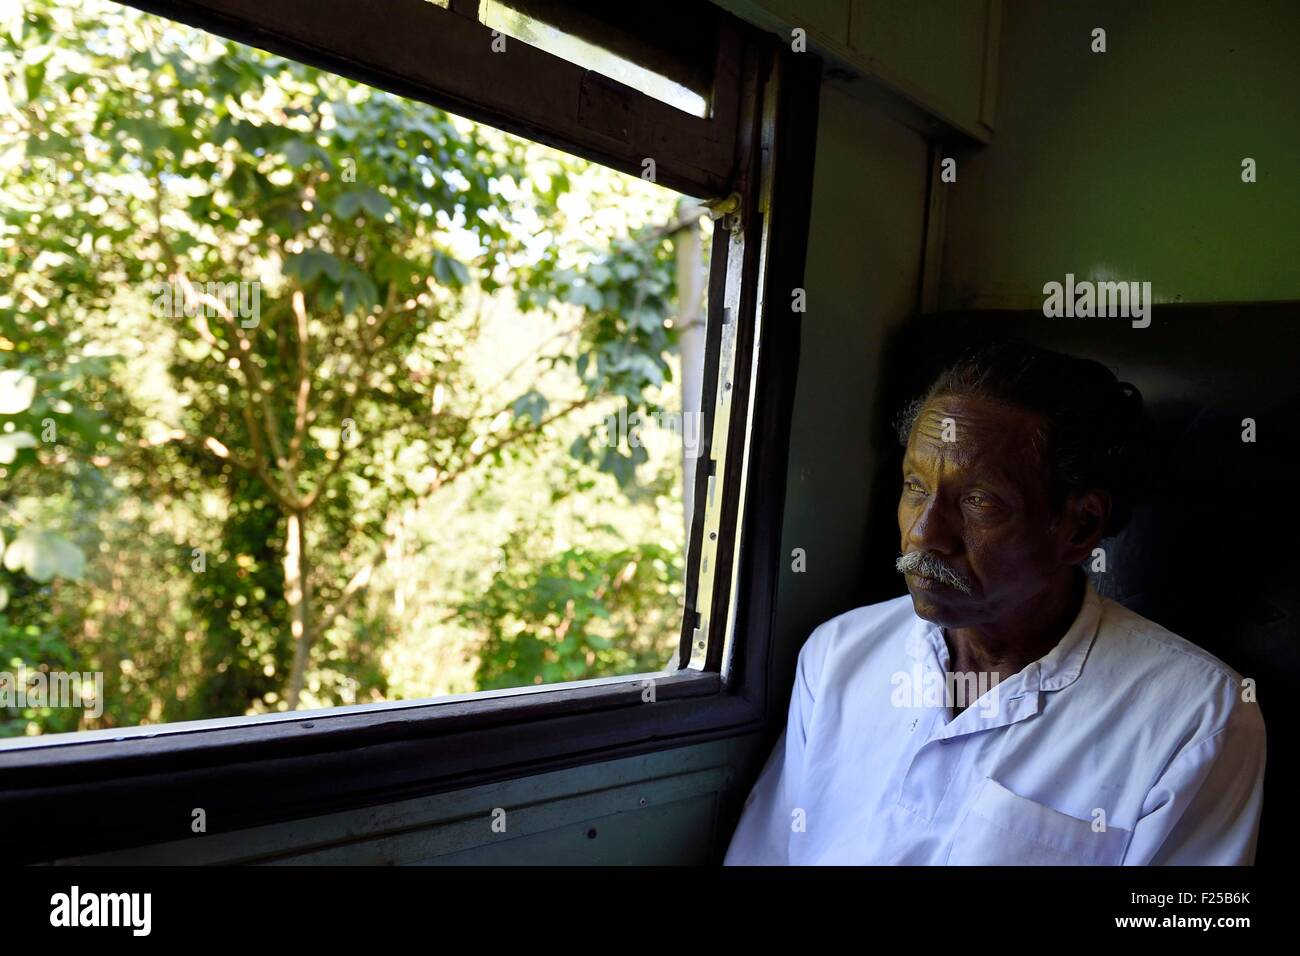 Sri Lanka, Uva Province, the popular scenic train ride through the tea growing hill country between Badulla and - Stock Image